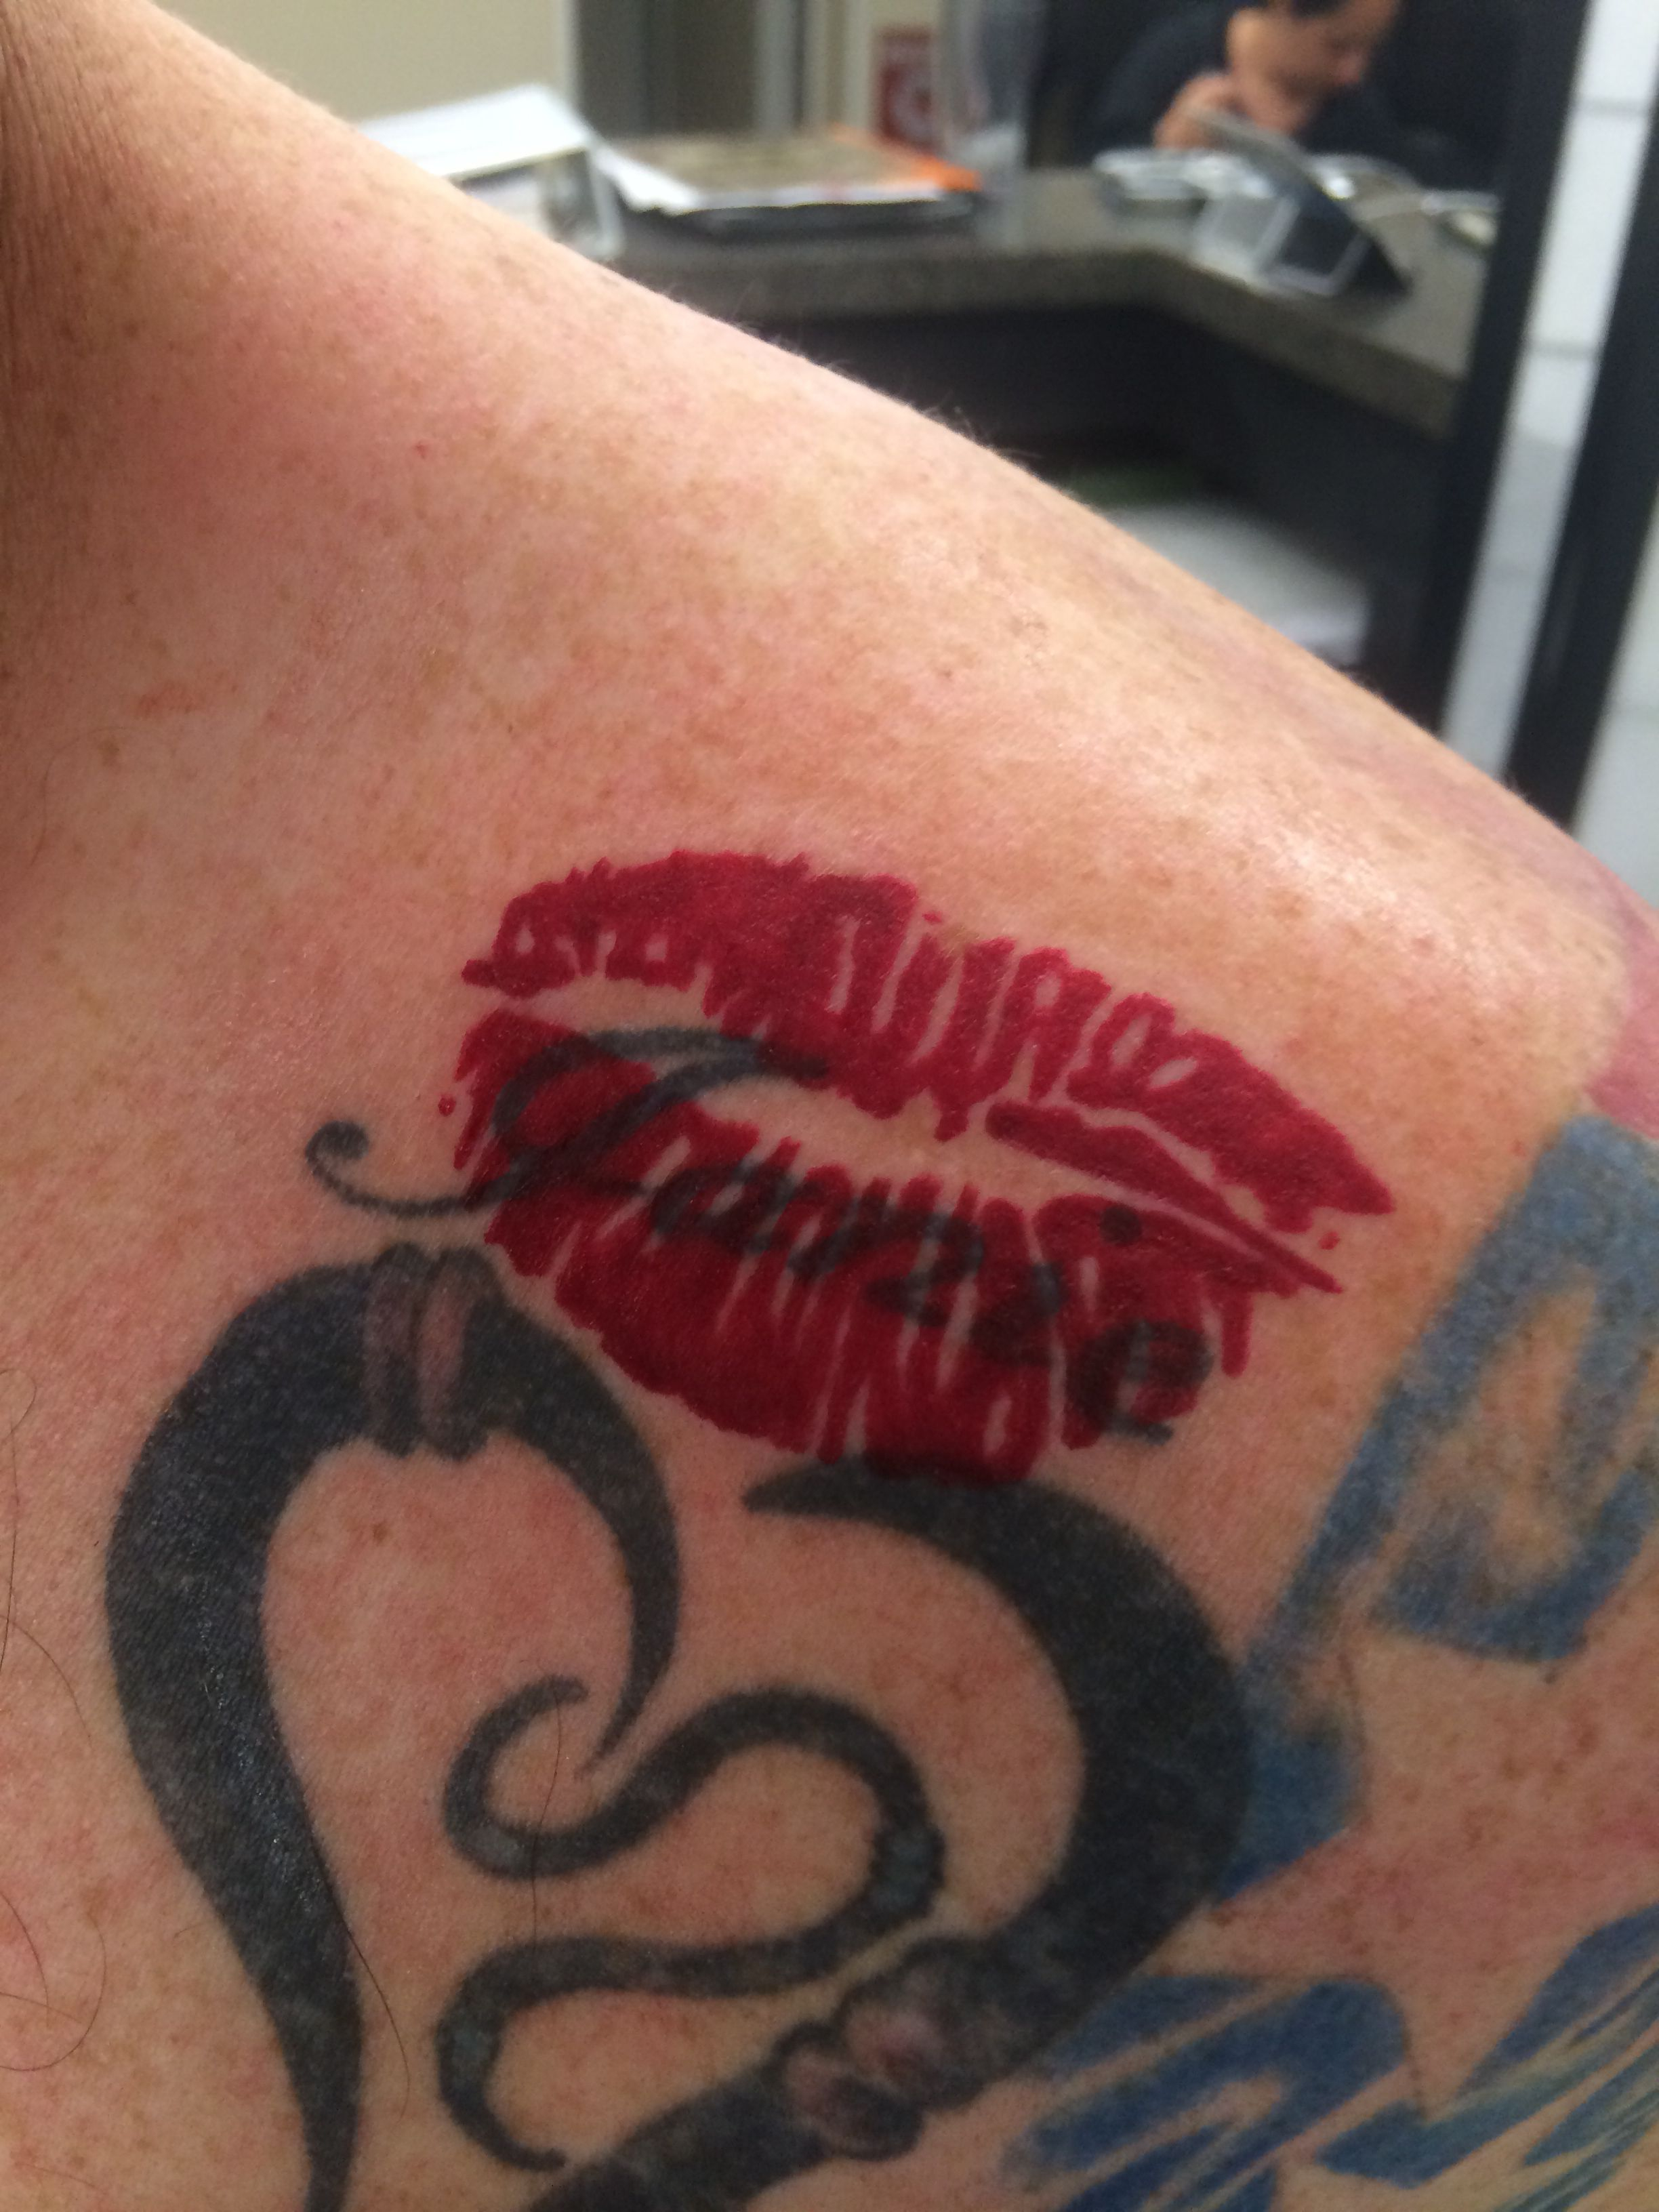 Pair Of Lips Stamped Like Tattoo Over Ex Wifes Name Tattoo Ideas throughout proportions 2448 X 3264